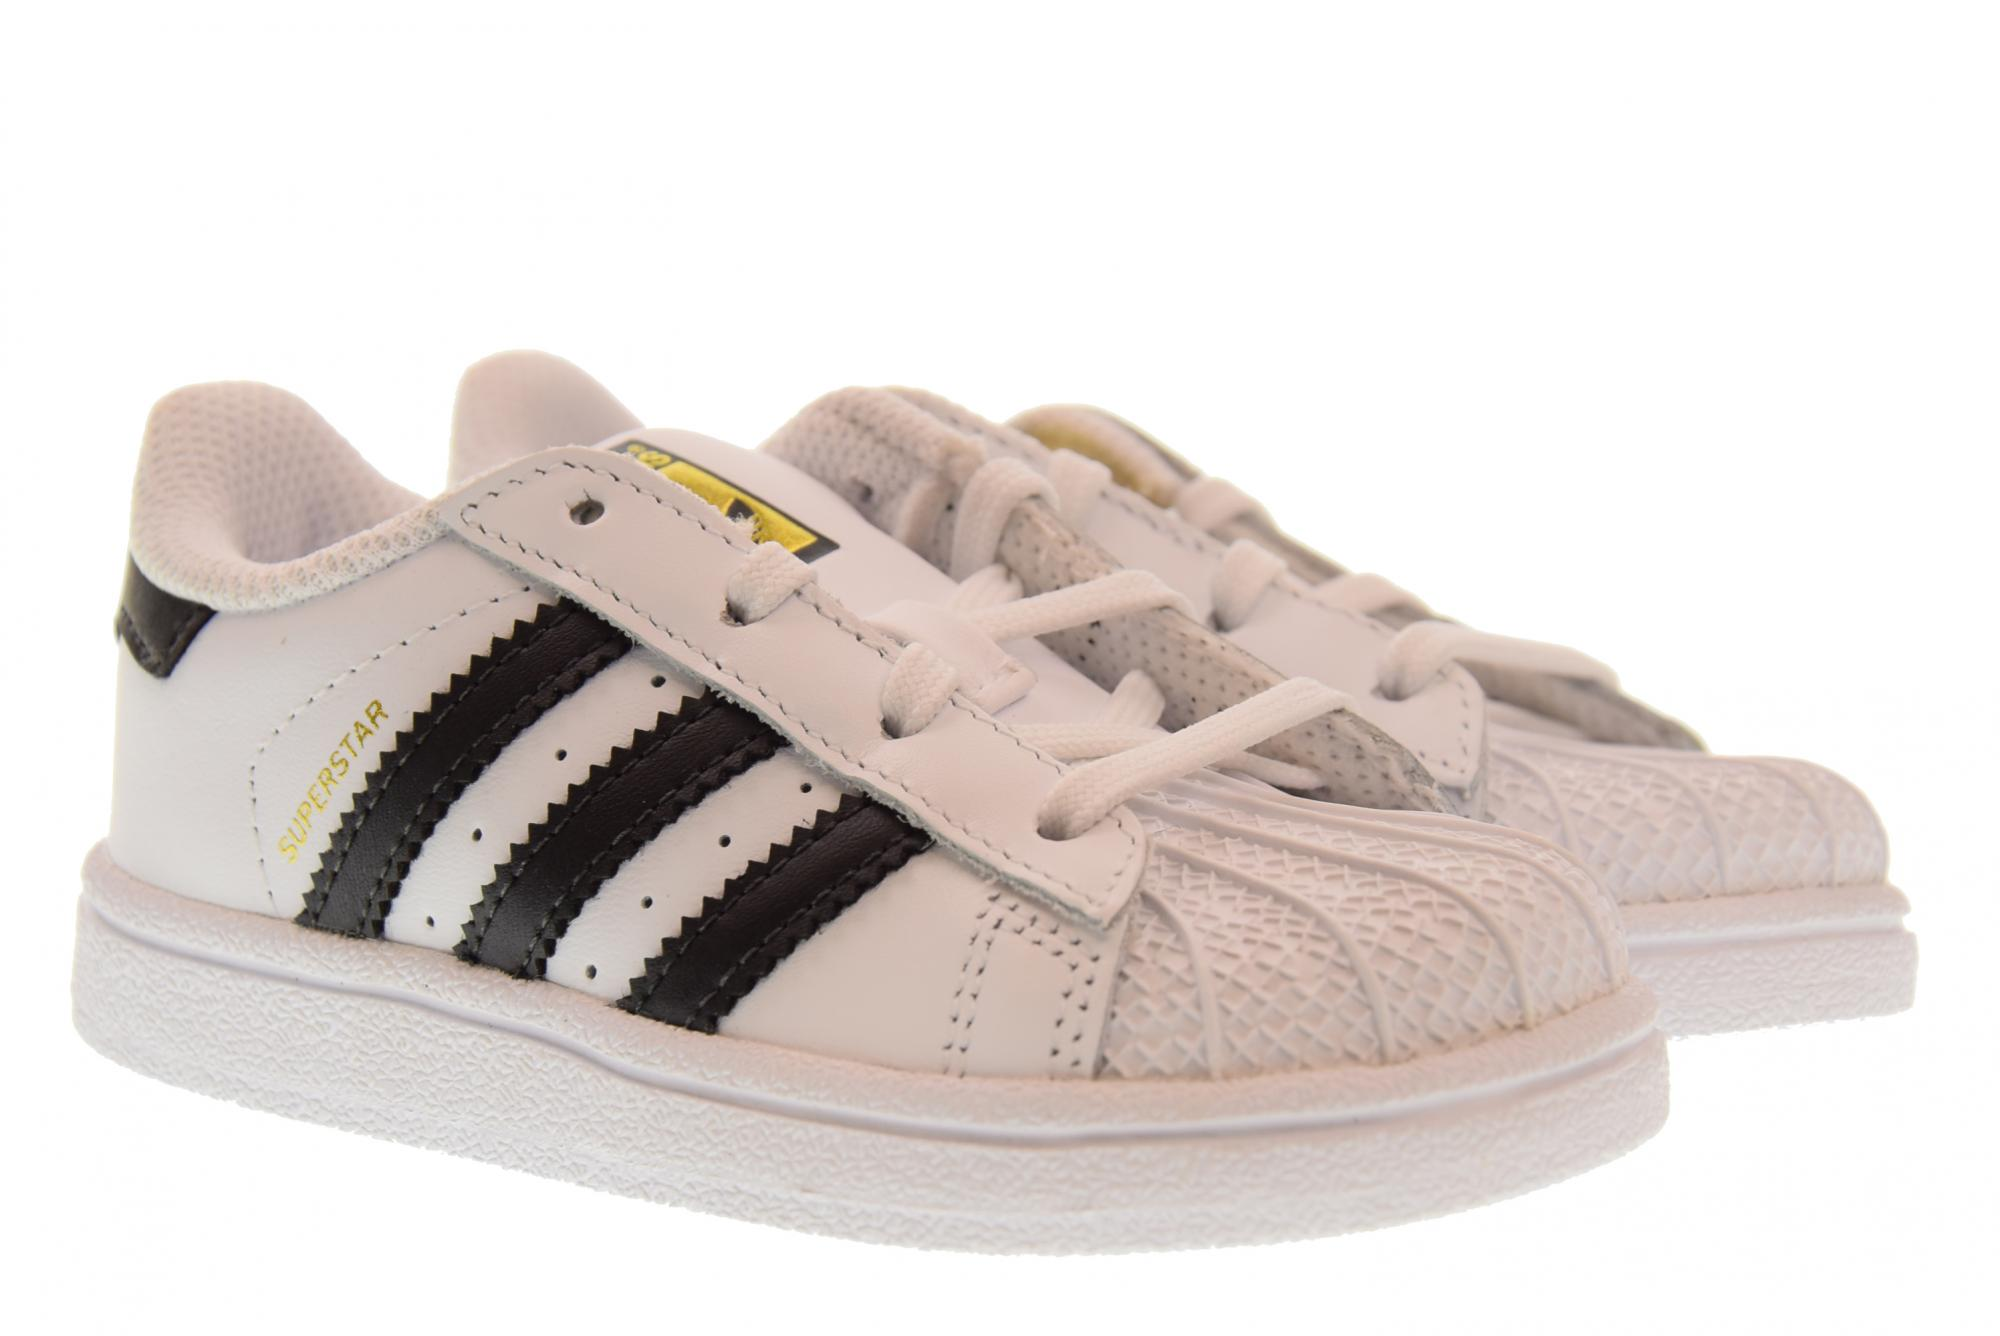 meet c8bdb ef10b Adidas scarpe junior bambino sneakers basse SUPERSTAR I BB9076 A18